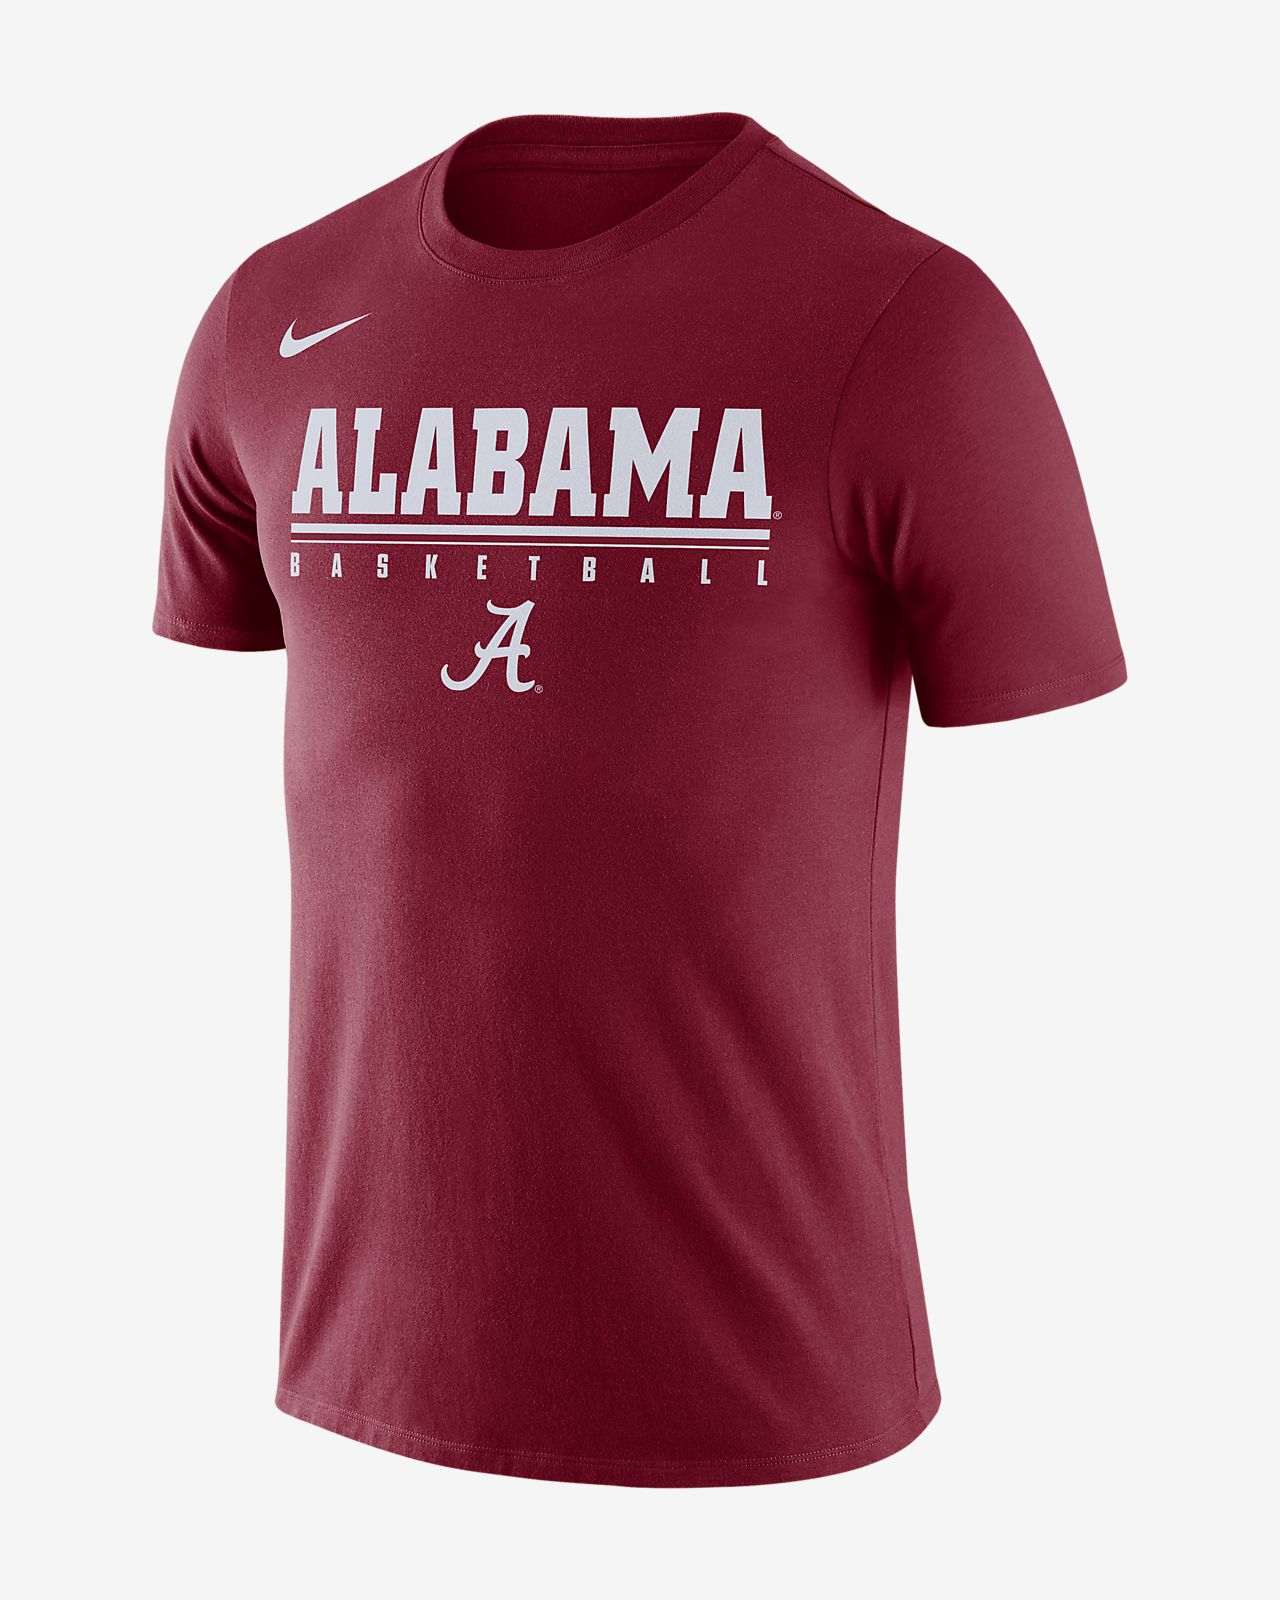 96ae0237f Nike College Dri-FIT Legend (Alabama) Men s T-Shirt. Nike.com